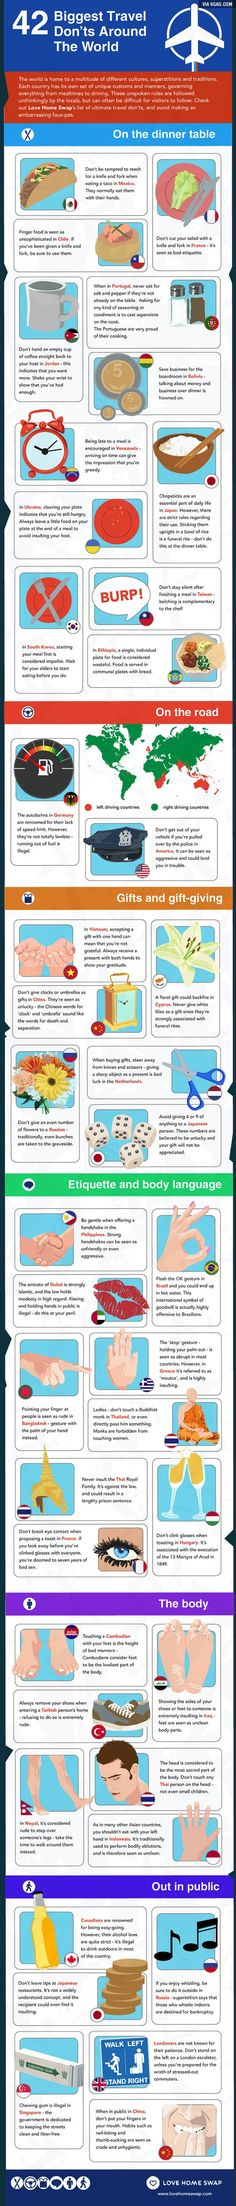 Rules for politeness around the world